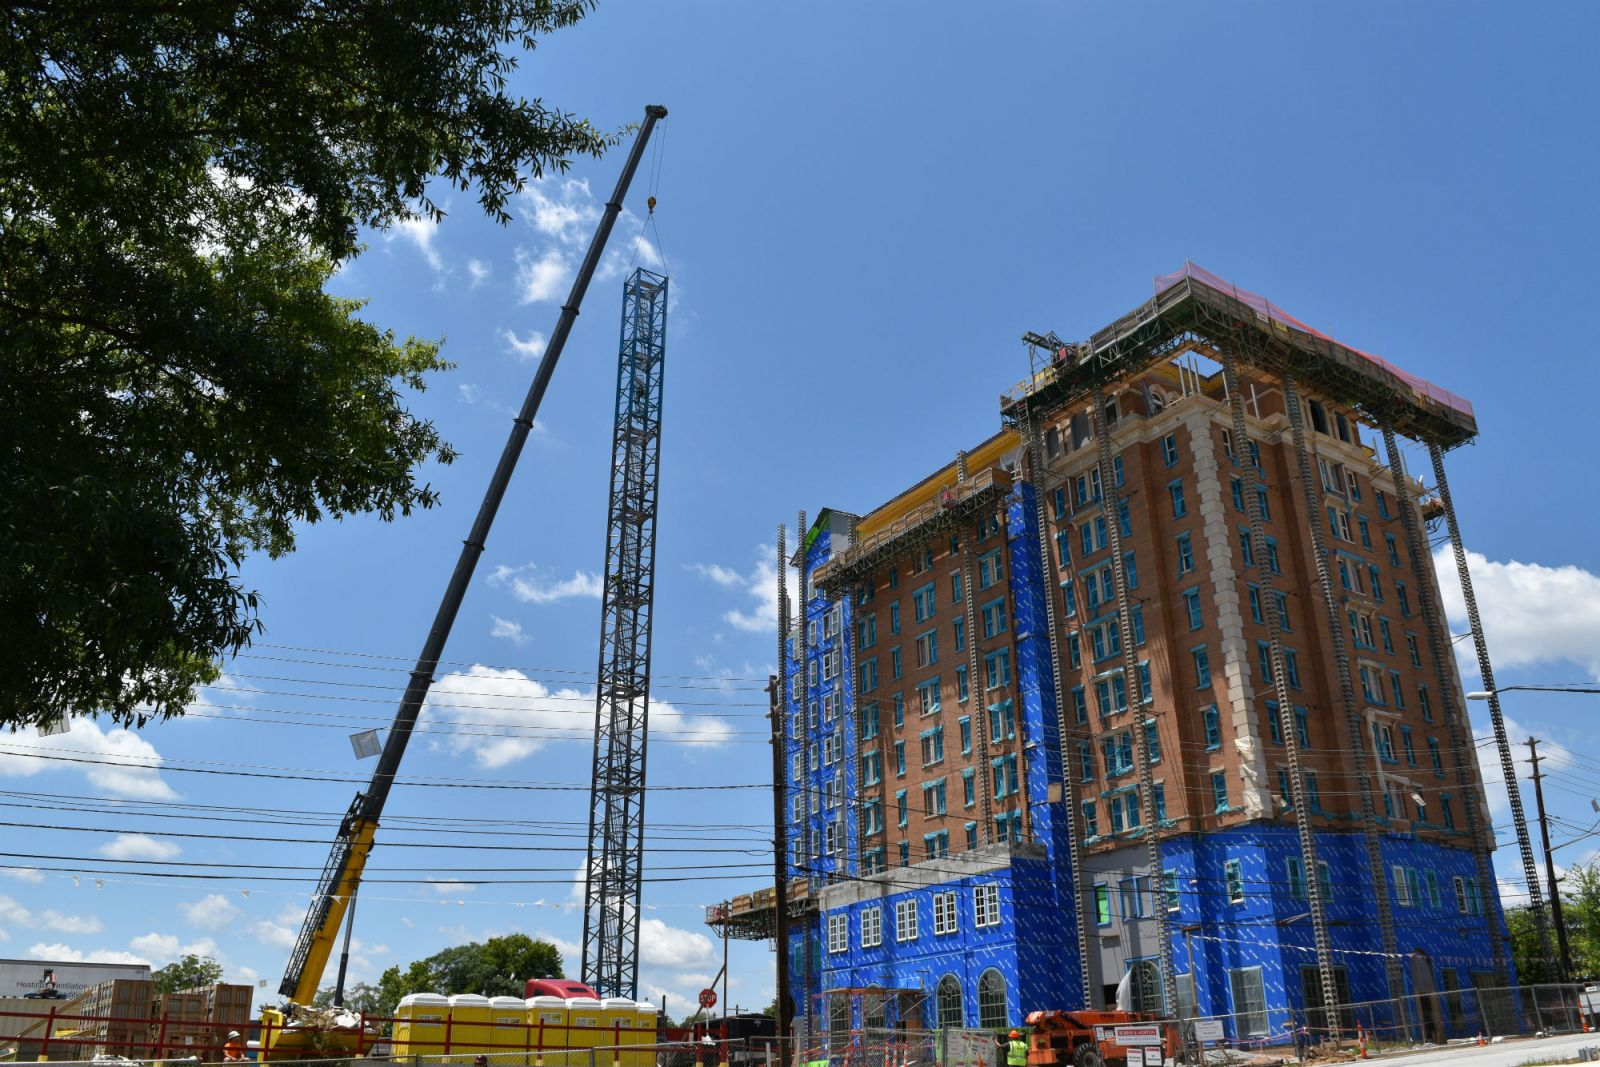 : The tower crane around the AC Marriott Spartanburg was recently taken down. Officials with OTO Development, developer of the downtown hotel, said work still remains on the inside and outside of the 10-story building before its fall completion. (Photo/Provided)